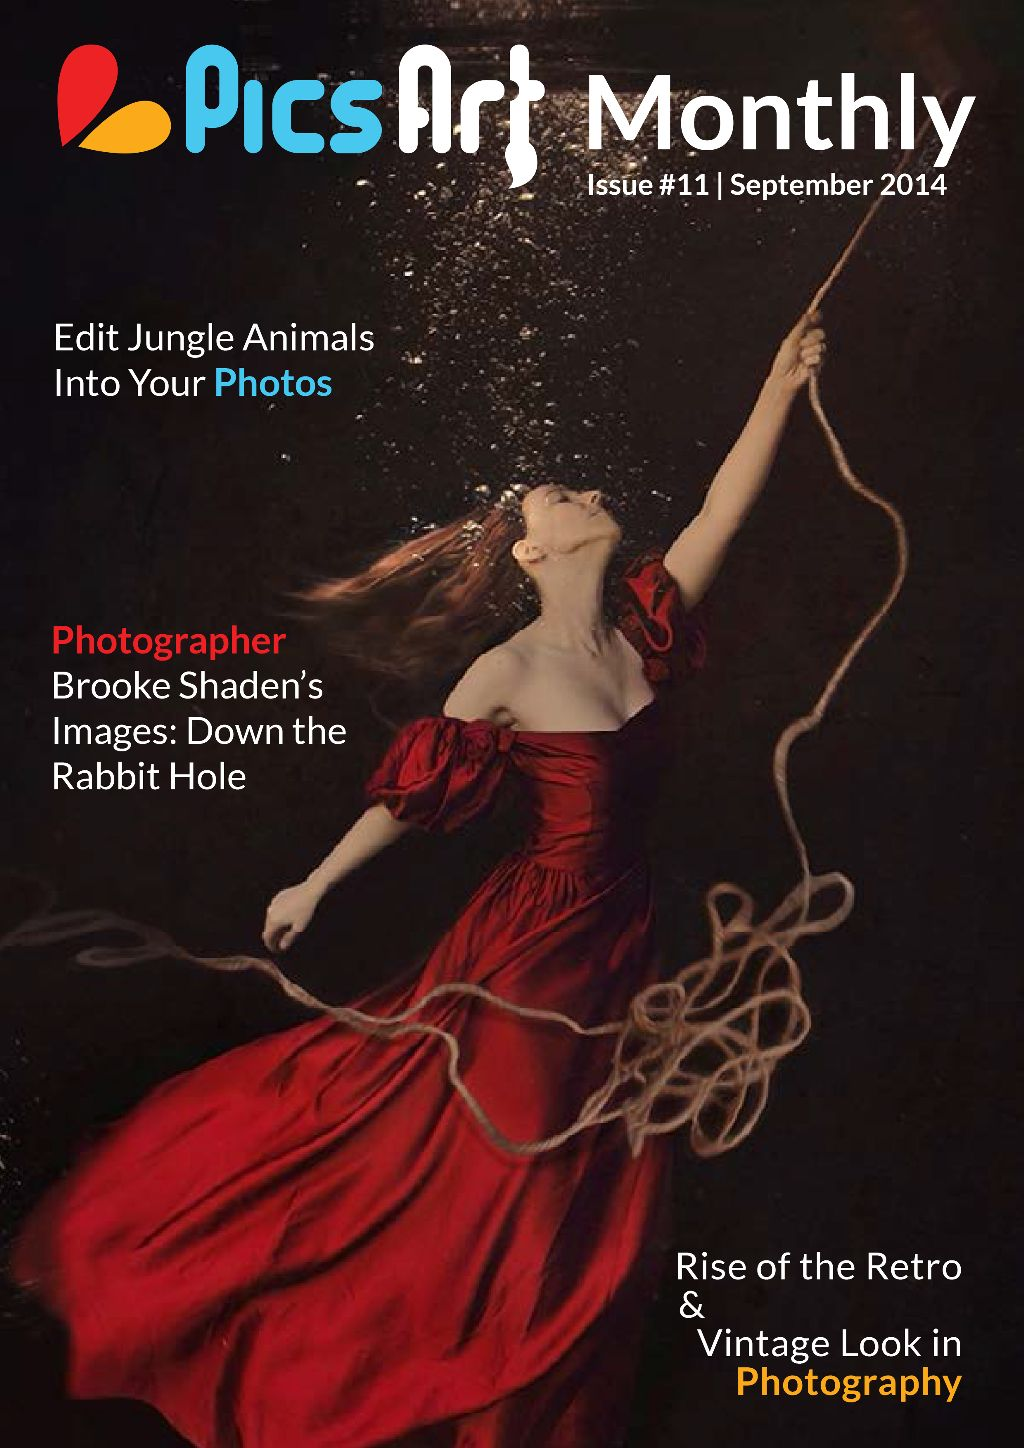 September Issue of PicsArt Monthly Art Magazine